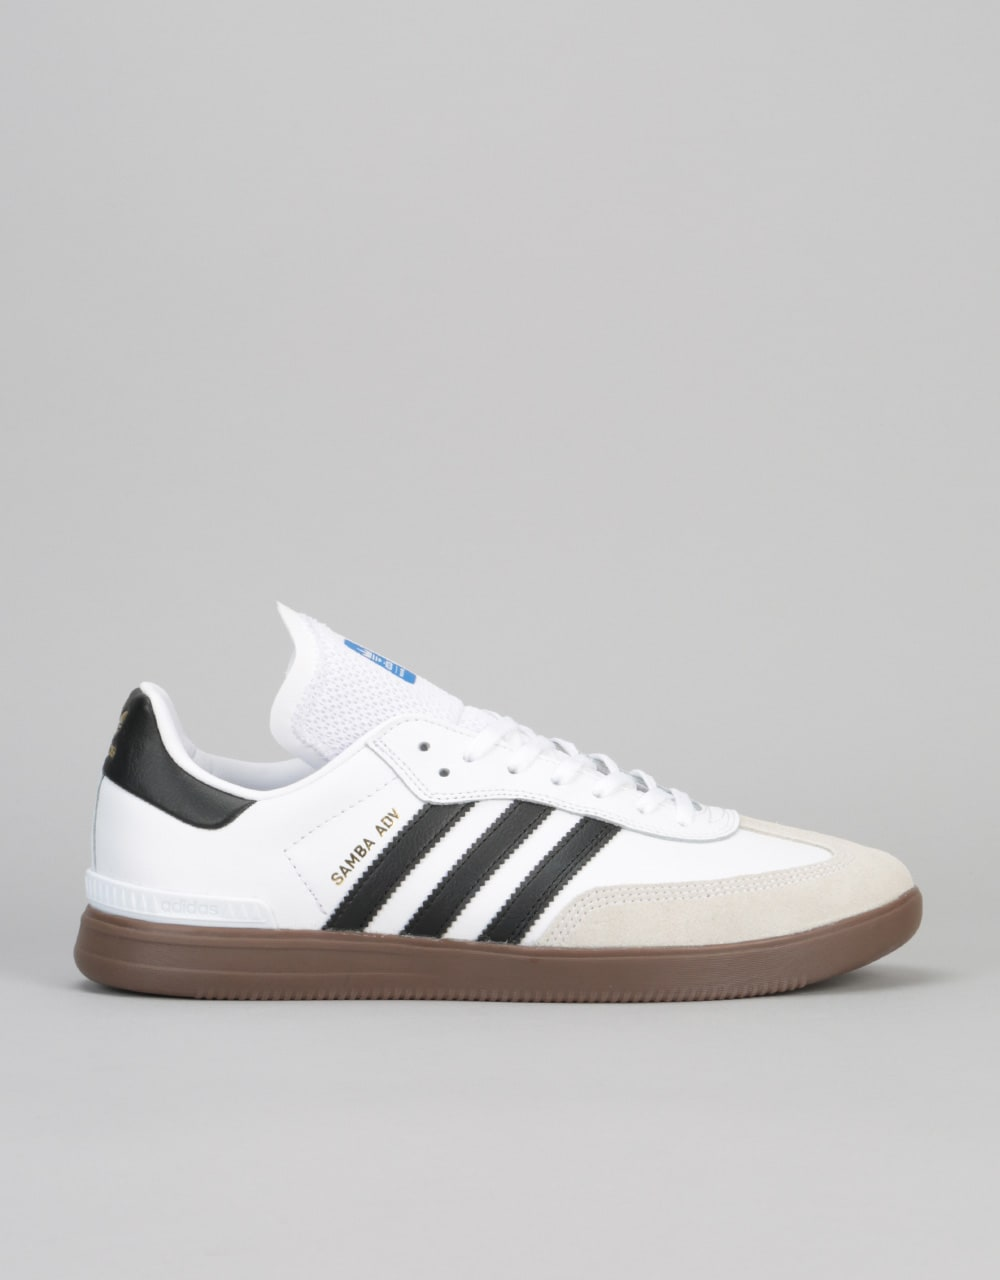 new concept f3f38 7e7be Adidas Samba ADV Skate Shoes - Ftwr WhiteCore BlackGum  Mens Footwear   Trainers  Skate Shoes  Sneakers  Runners  Route One